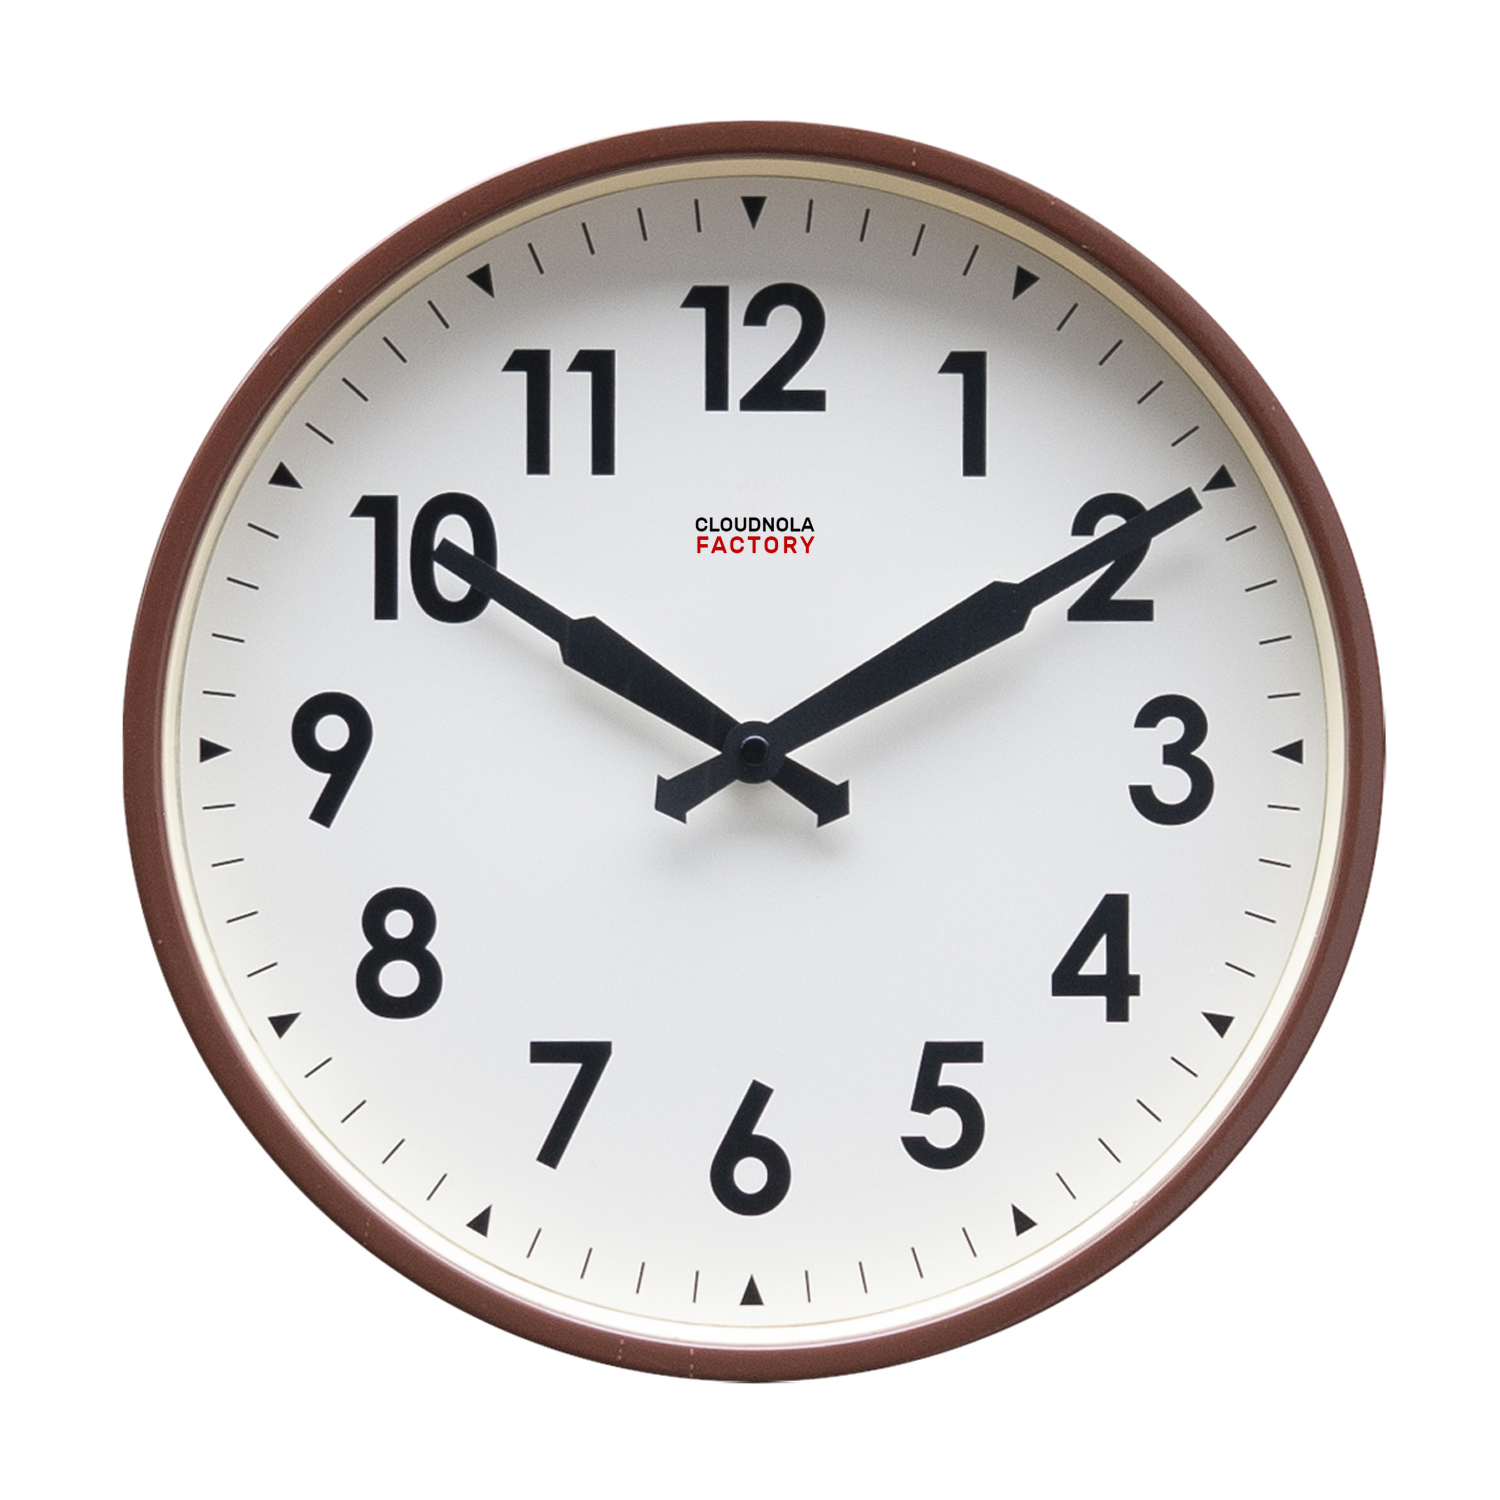 Cloudnola Factory Railway clock 30cm Brown Arabic